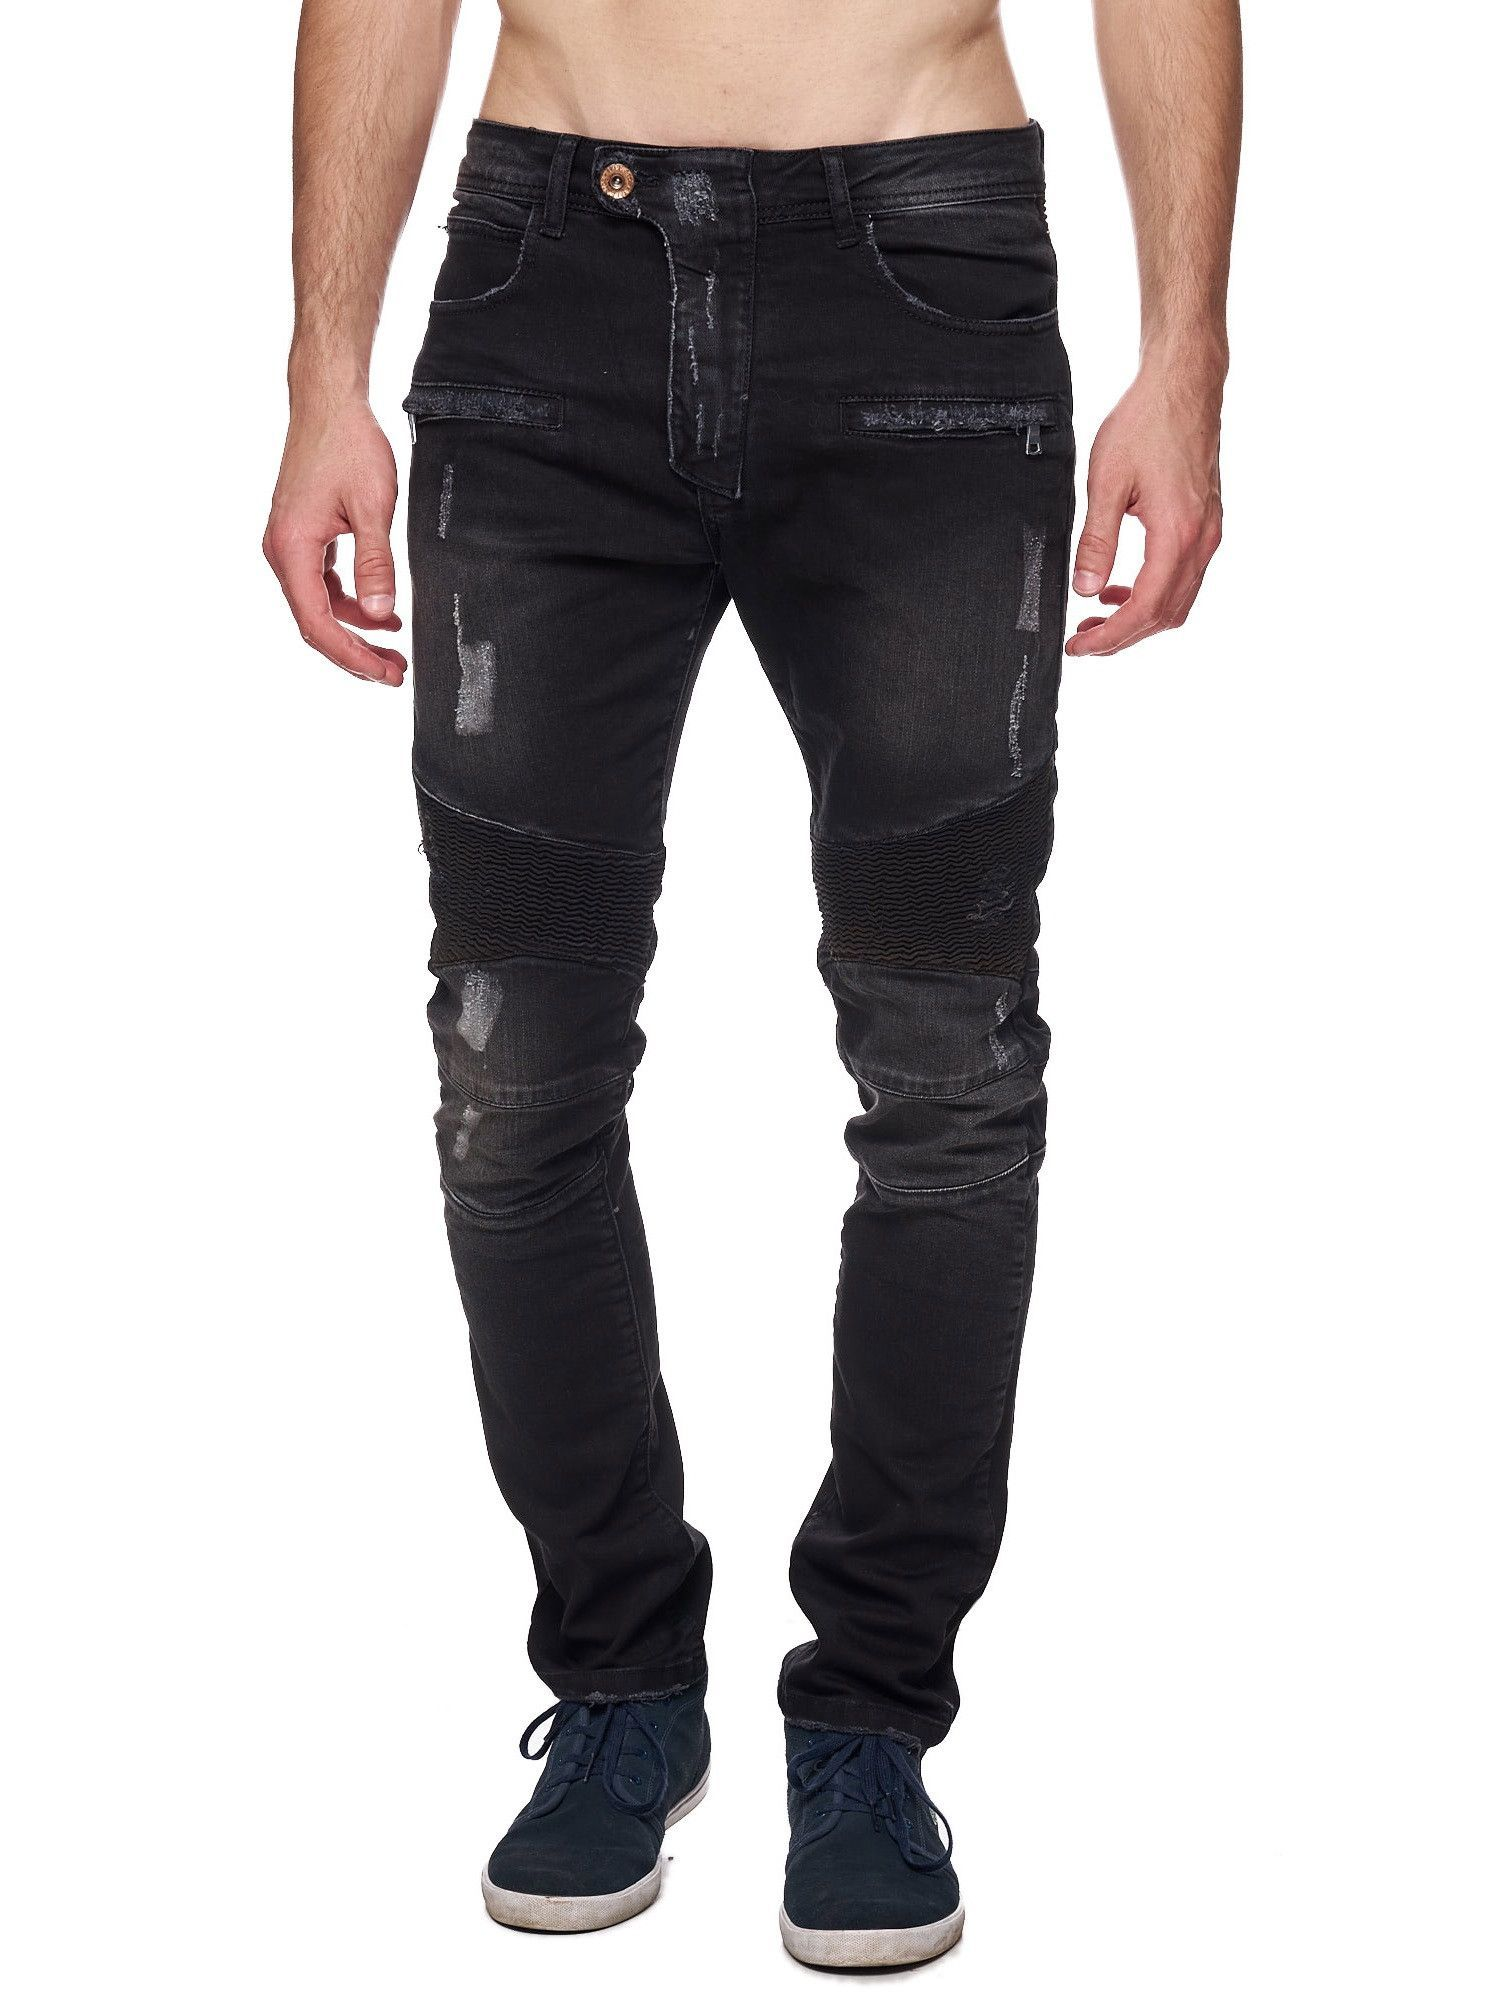 Slim Fit Washed Black Biker Distressed Jeans PLEASE NOTE THE LENGTH IS 32 (FOR ALL WAIST SIZES) size : W x L (Waist x Length) -100% Cotton -Zipper Fly -SLIM FIT